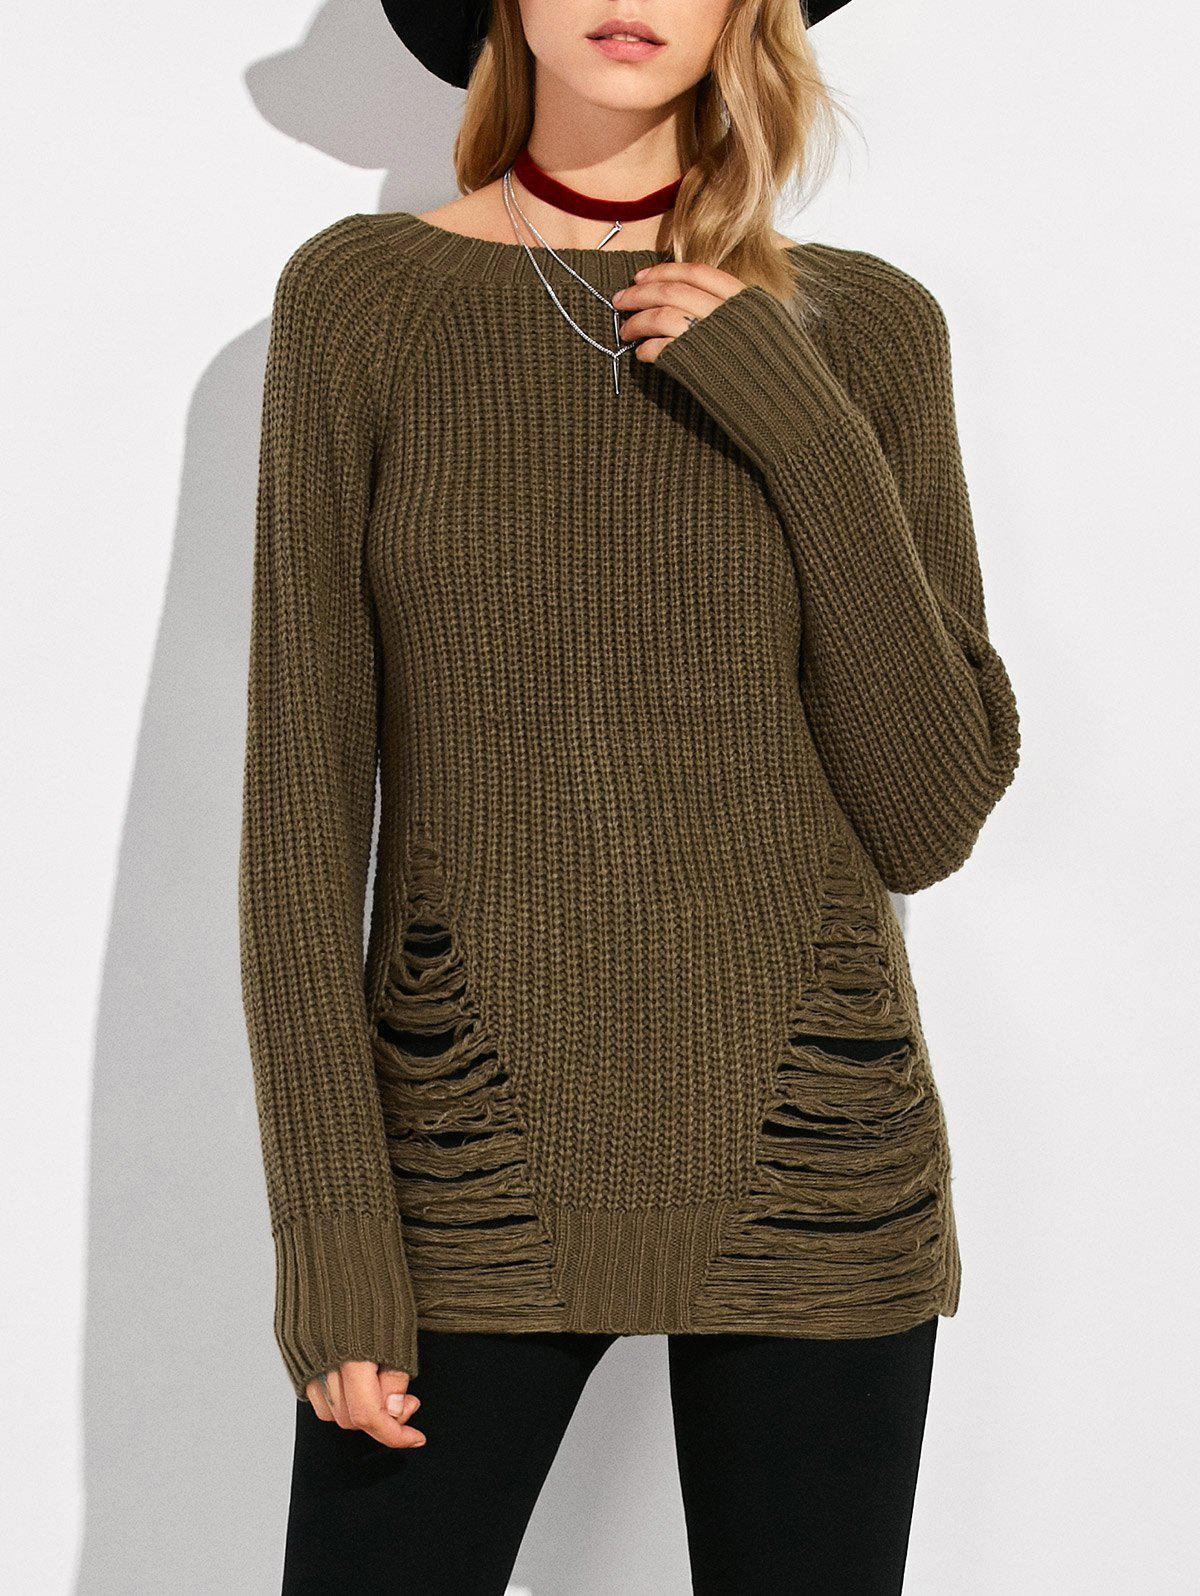 Crew Neck Ripped Sweater - ARMY GREEN M